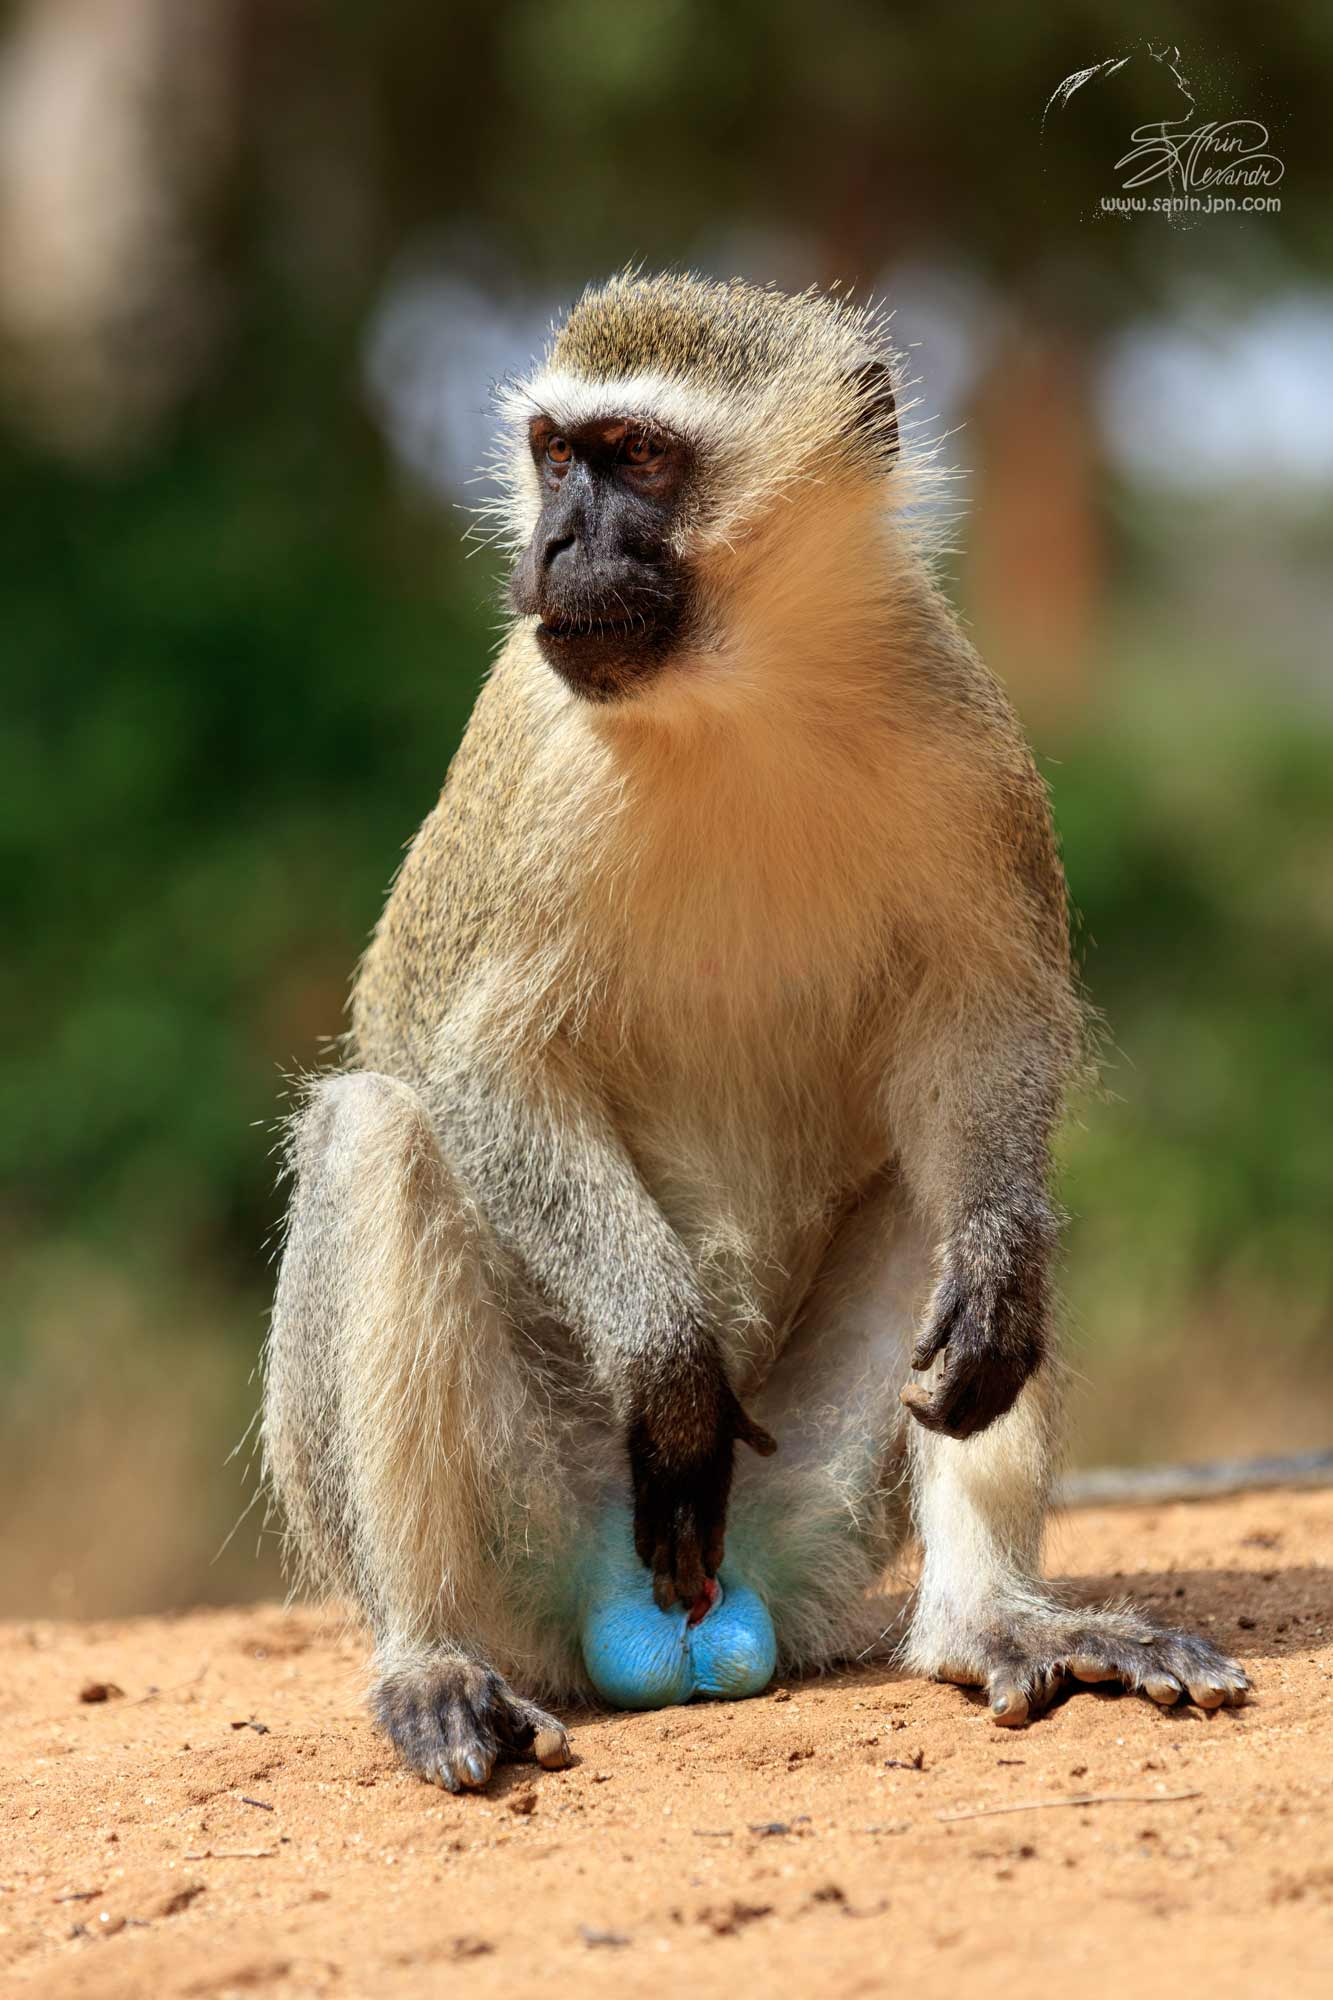 Red tail monkey